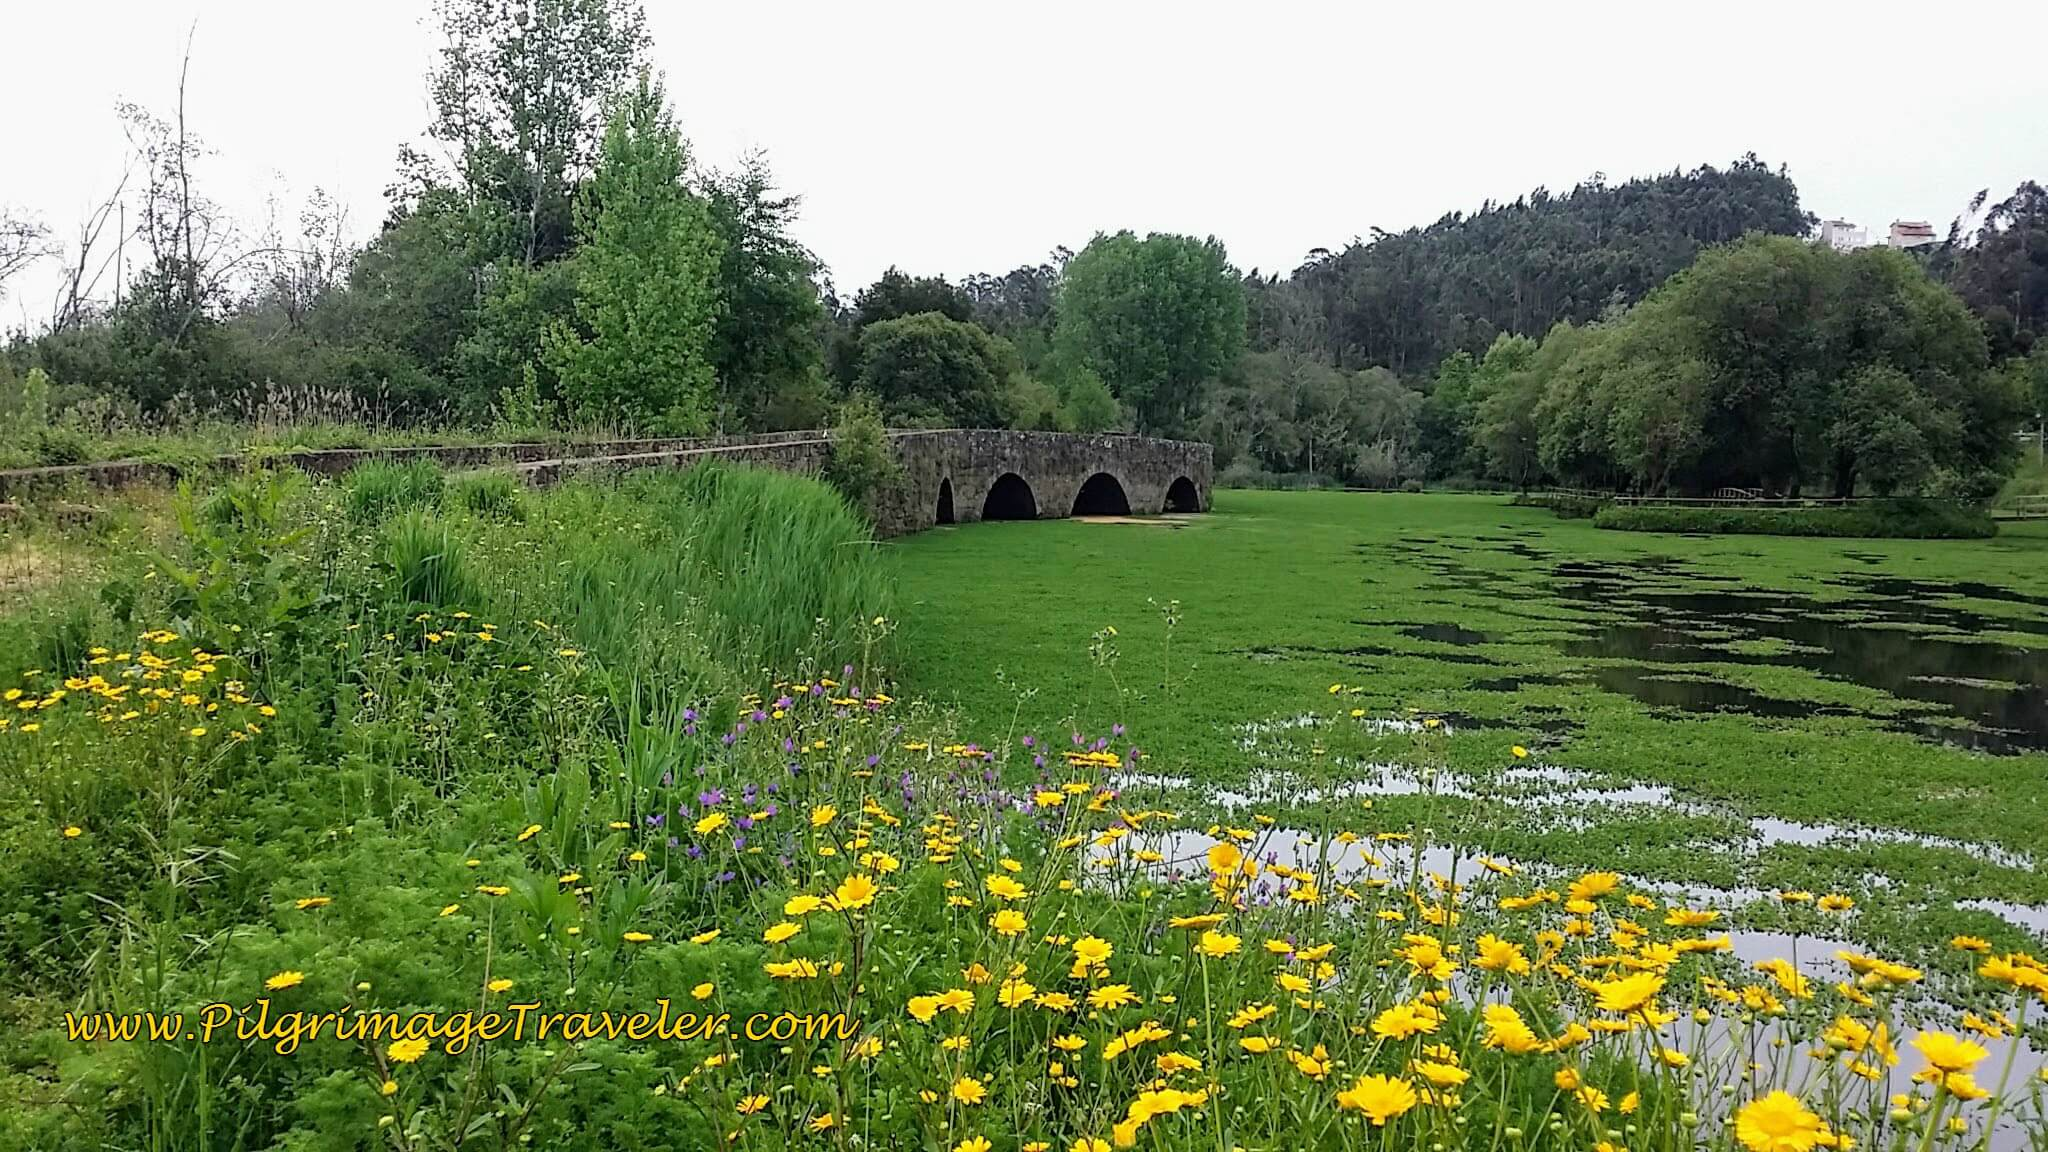 Old Roman Bridge, North of Agueda, Portugal